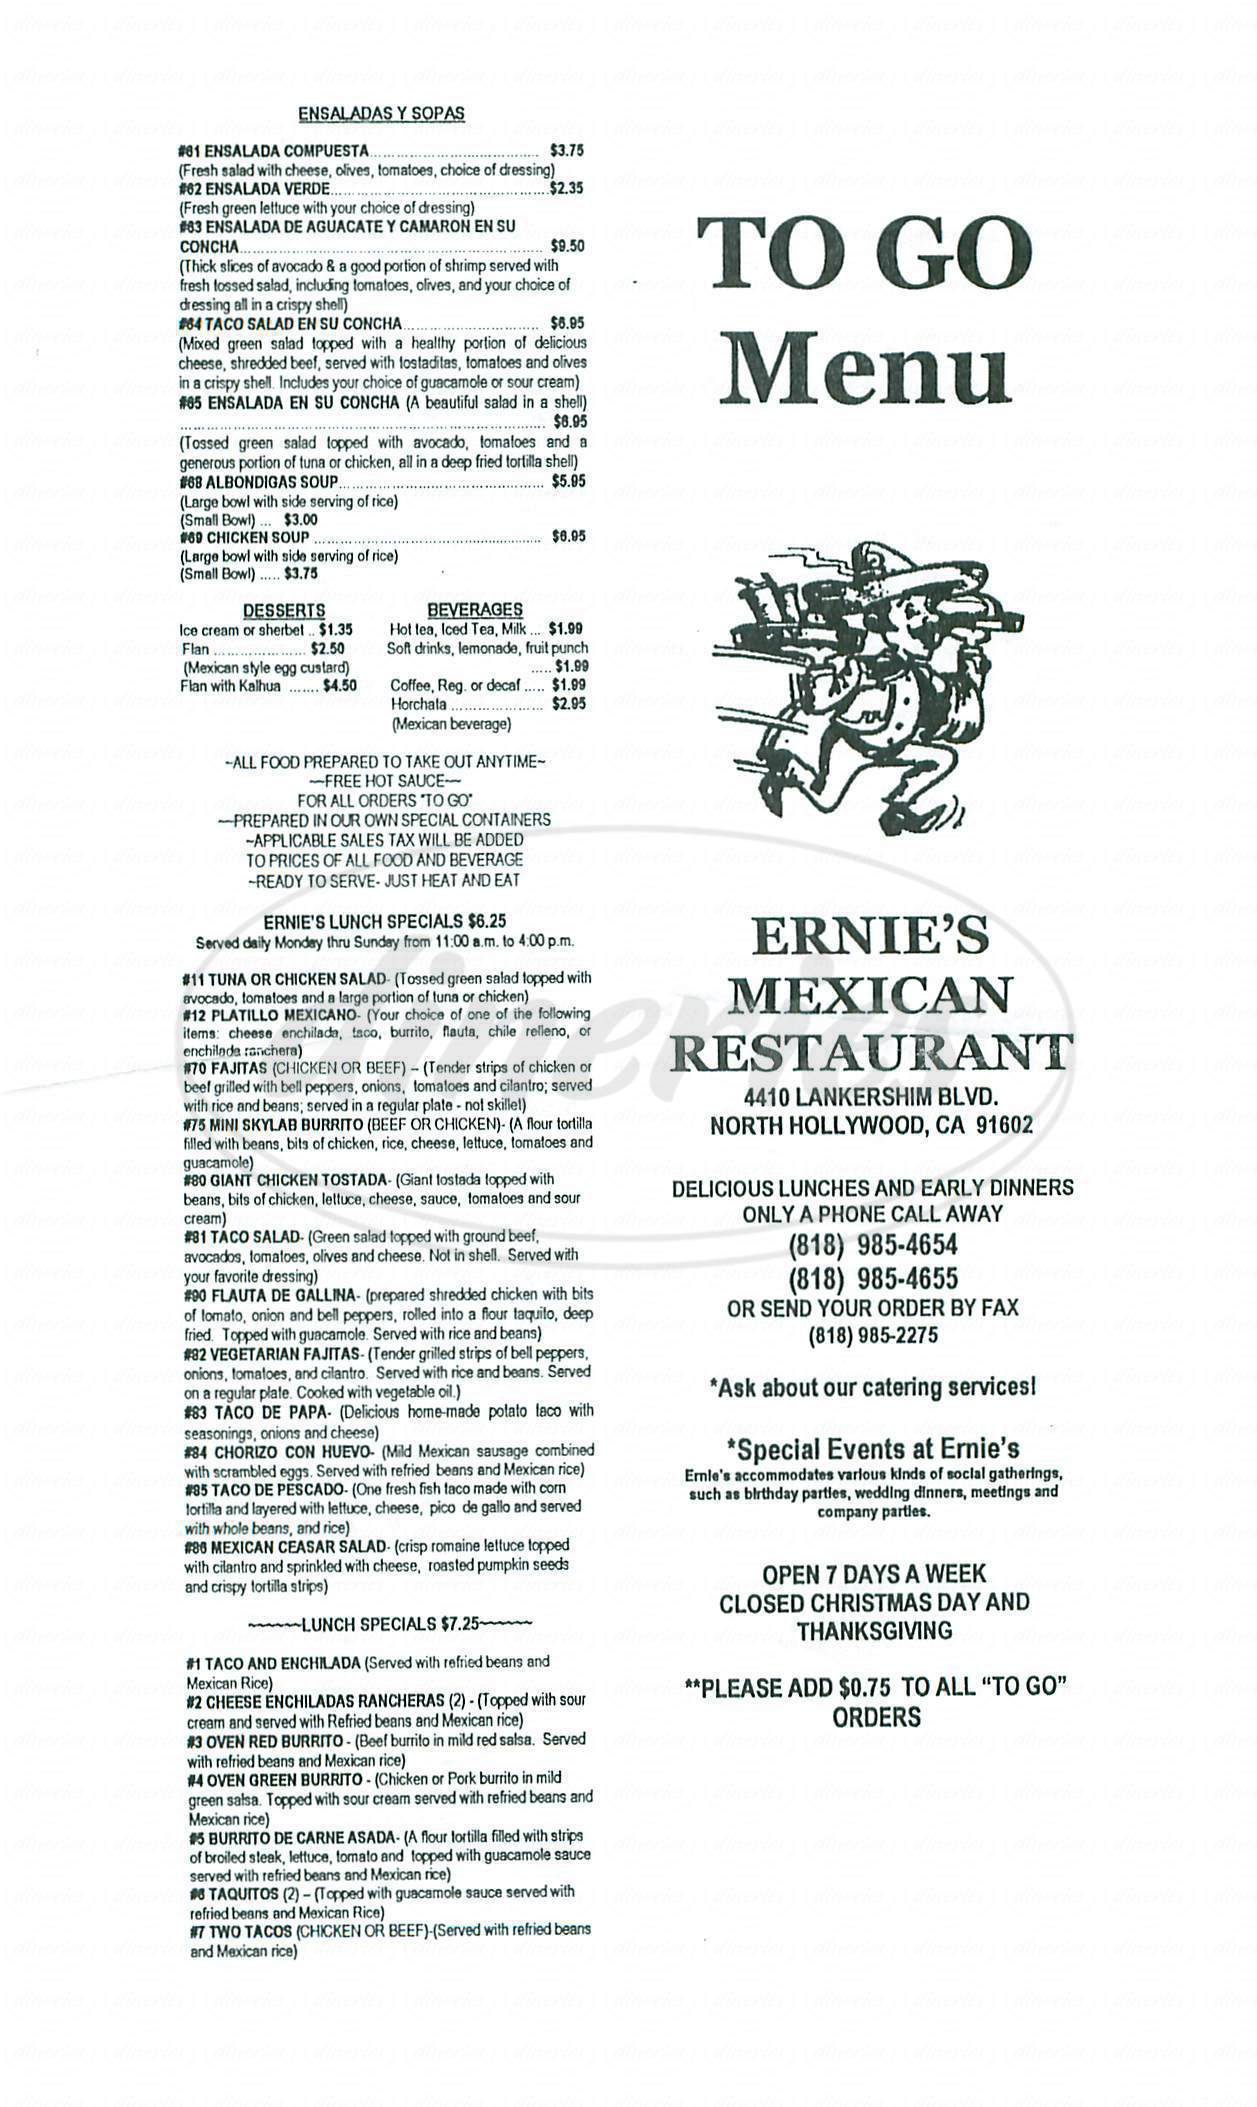 menu for Ernies Mexican Restaurant